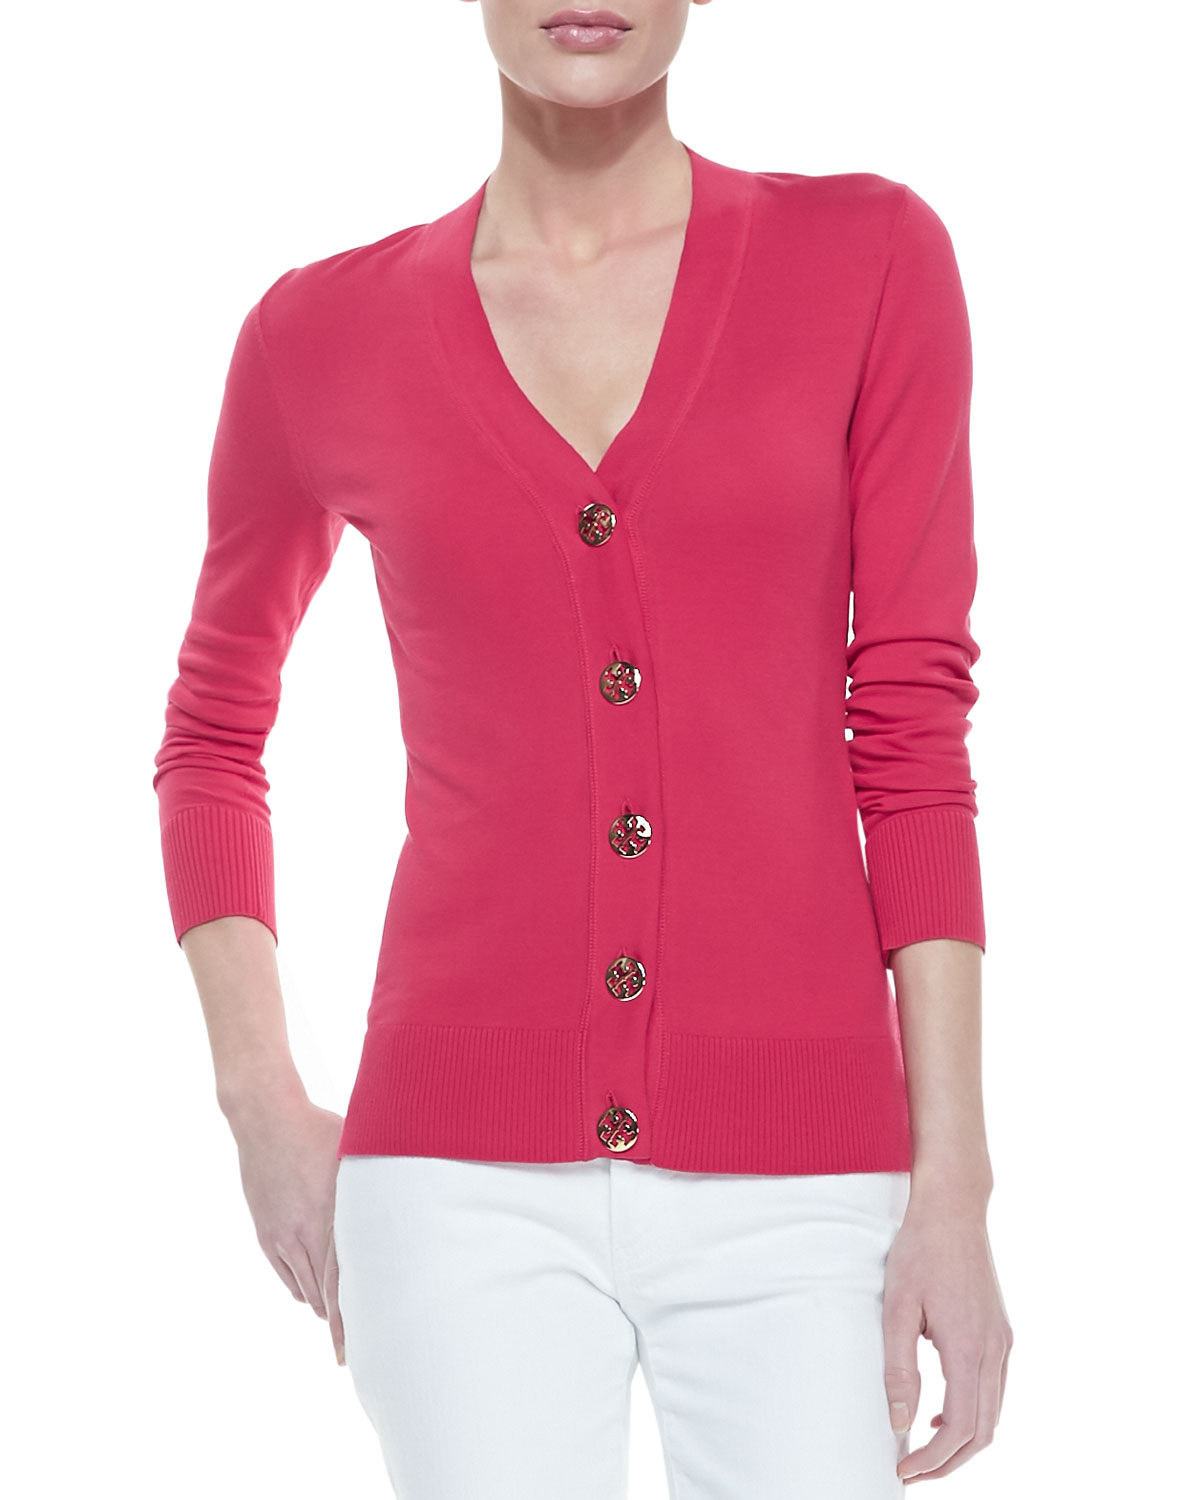 Tory burch Simone Buttondown Cardigan Carnival Pink in Pink | Lyst